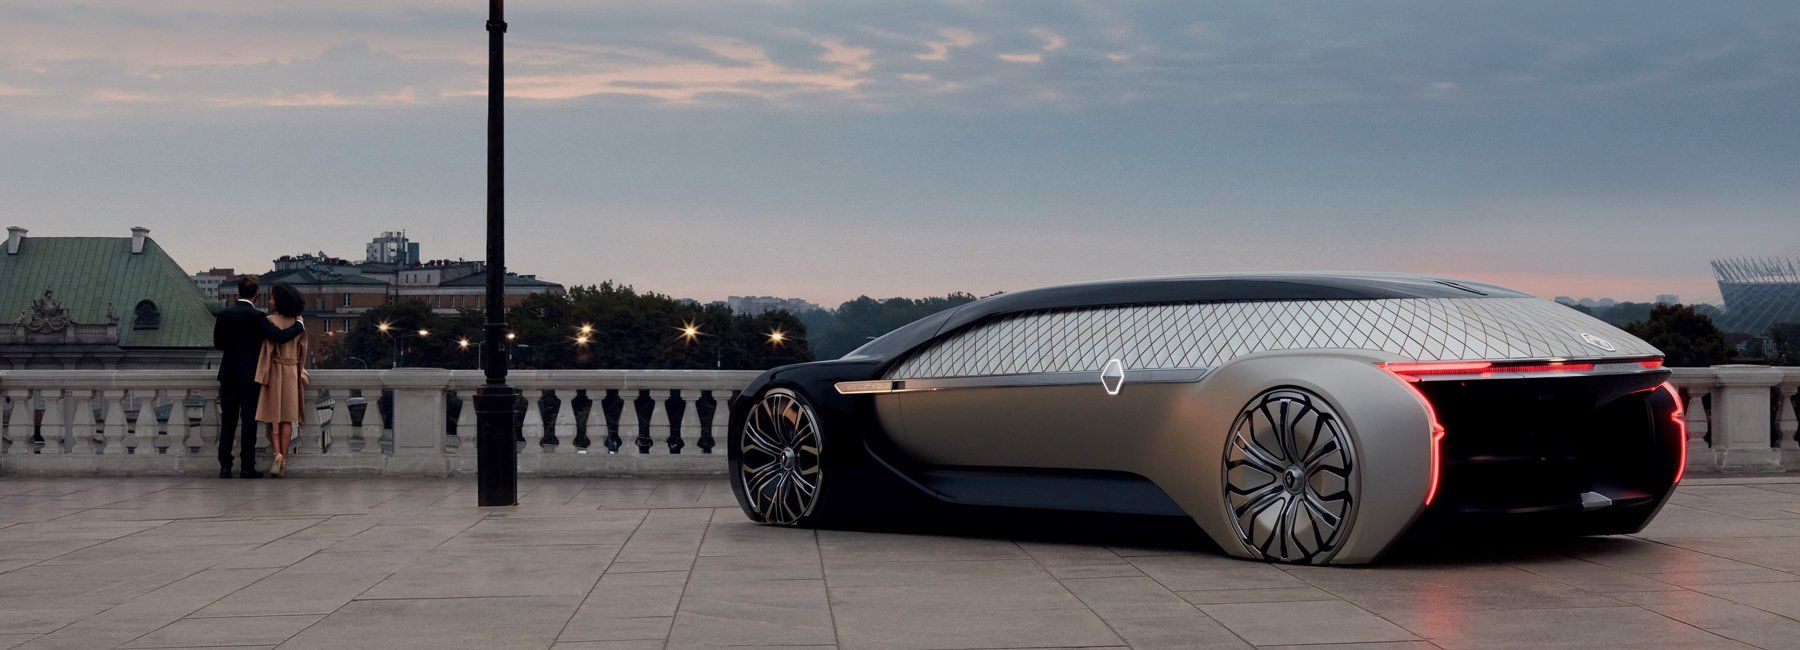 Renault S Ez Ultimo Car Concept Is A Self Driving Luxury Lounge Car Renault Self Driving